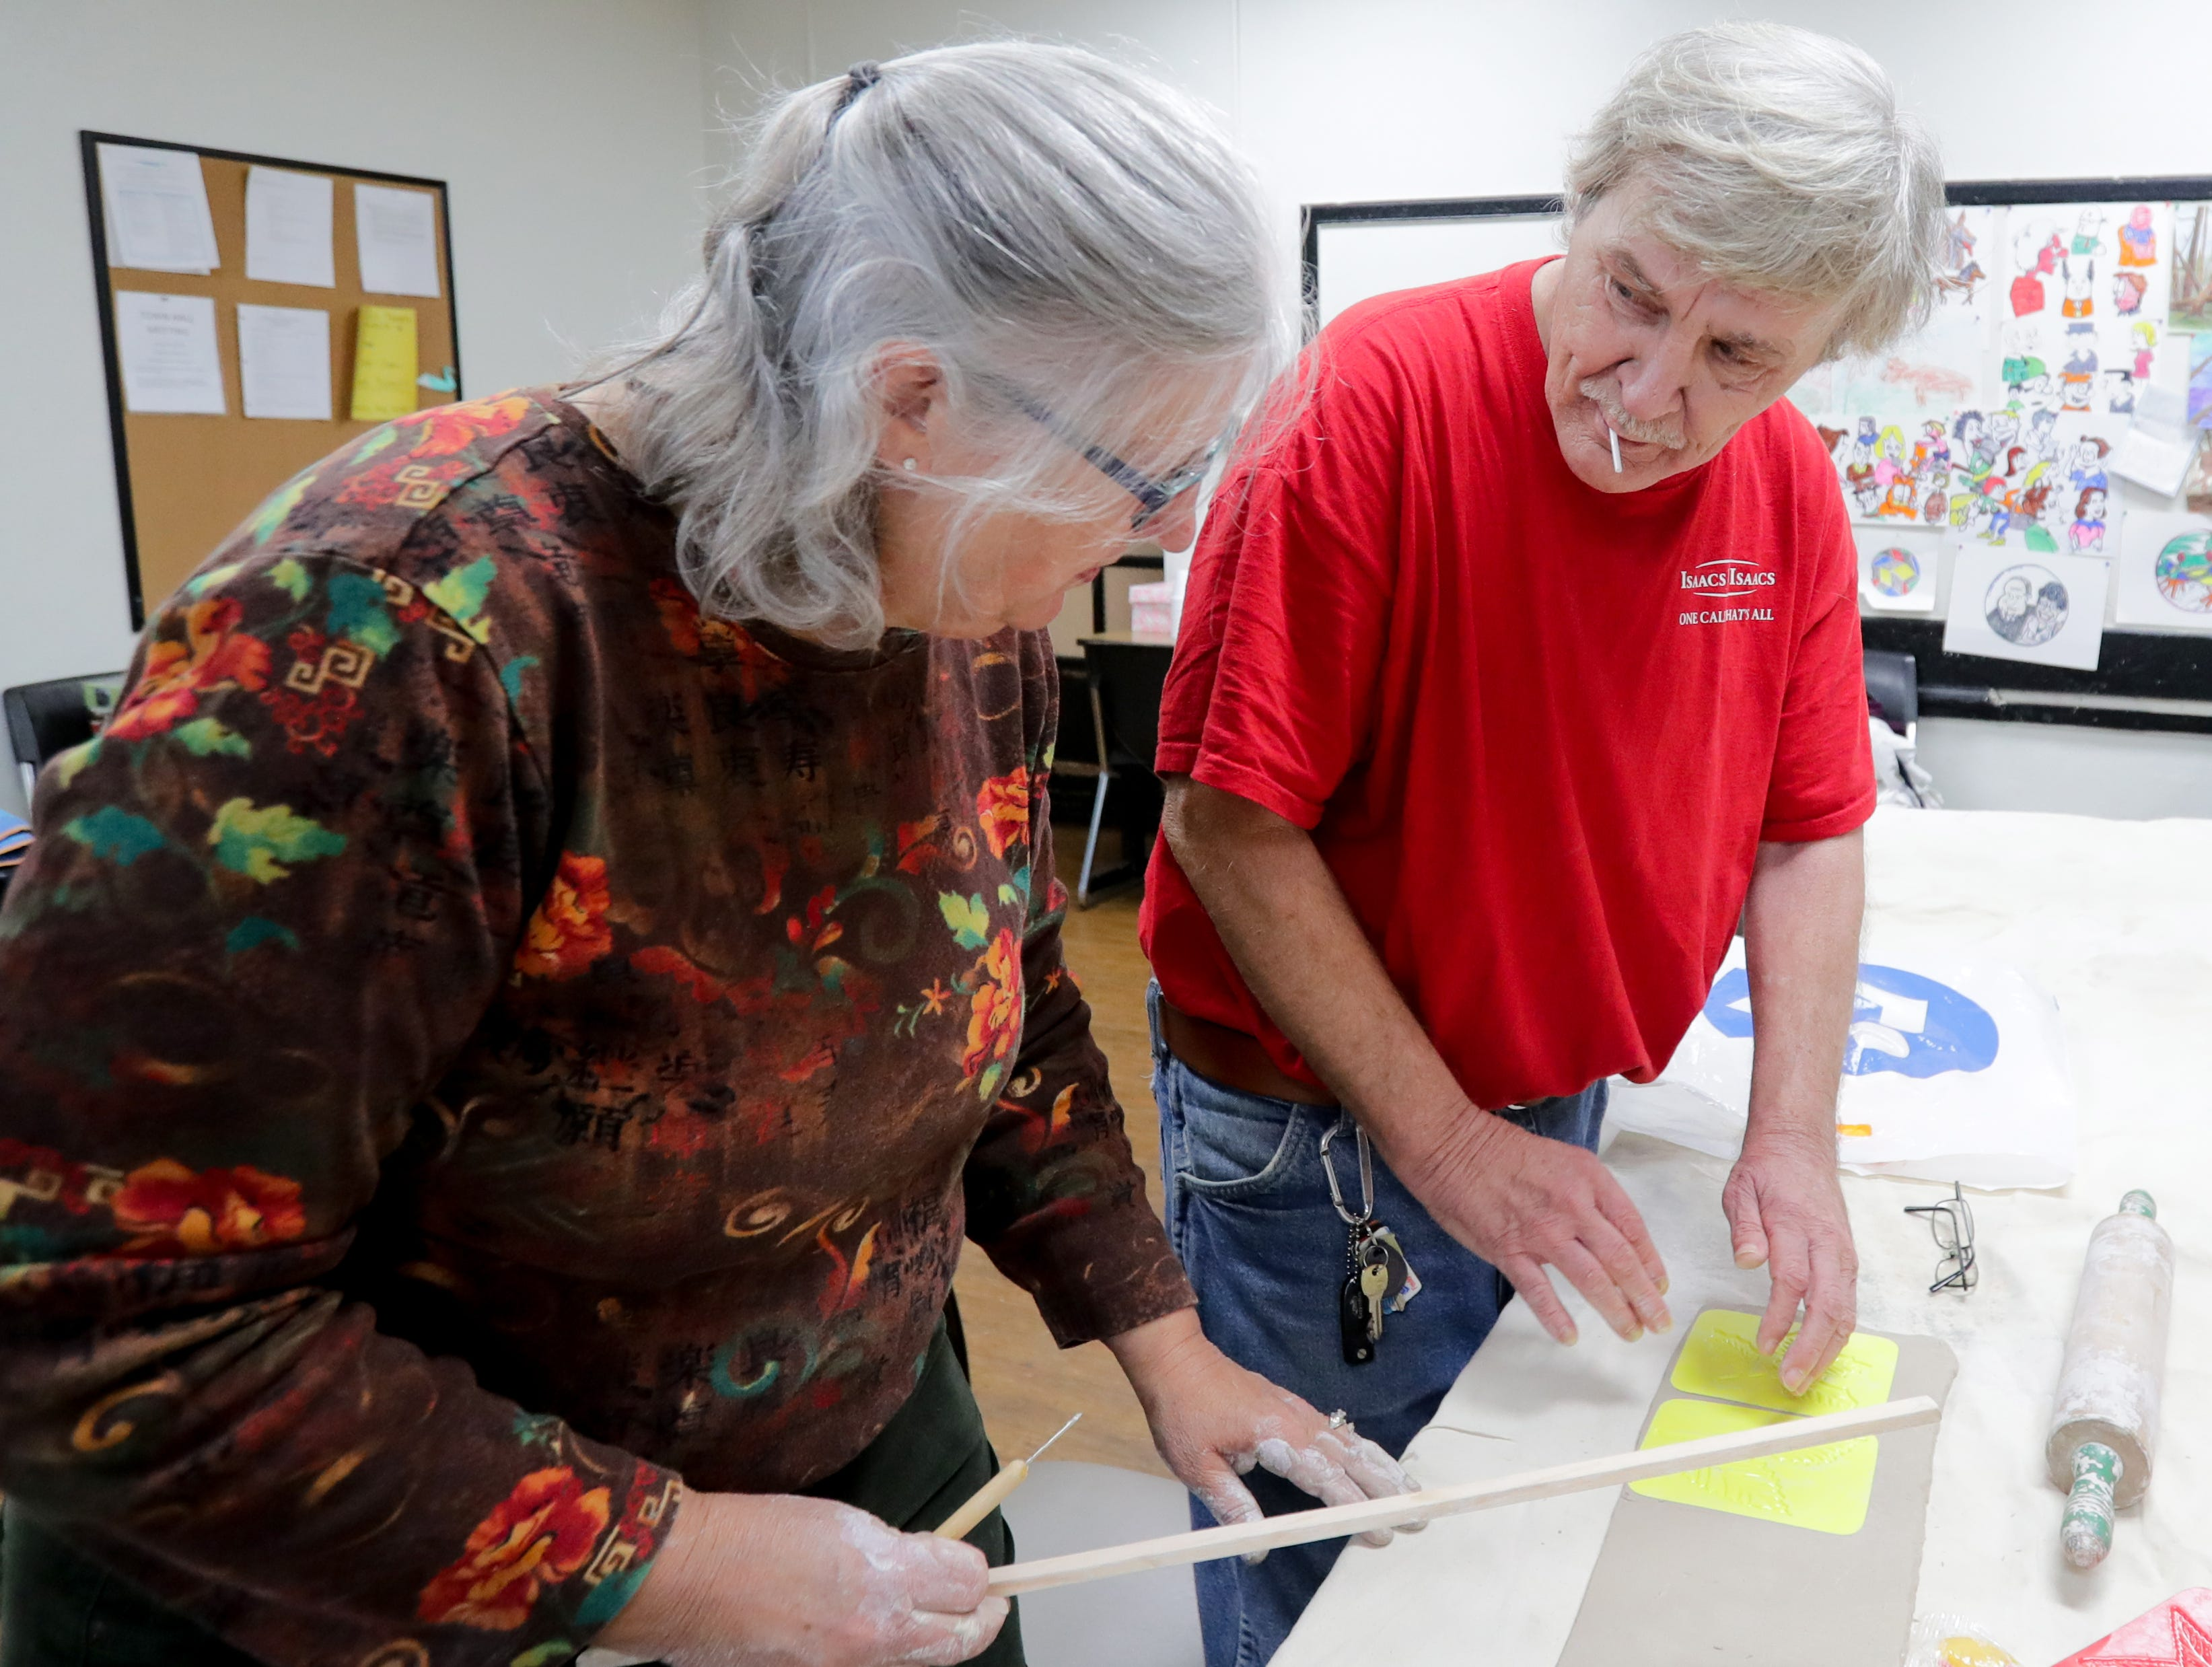 """James """"Jimbo"""" Fredrick works with PatÊSturtzel as part of the Kentucky Center for the Arts program called Arts in Healing. The program hires artists to help people, like vets, who have gone through traumatic experiences.Nov. 1, 208"""